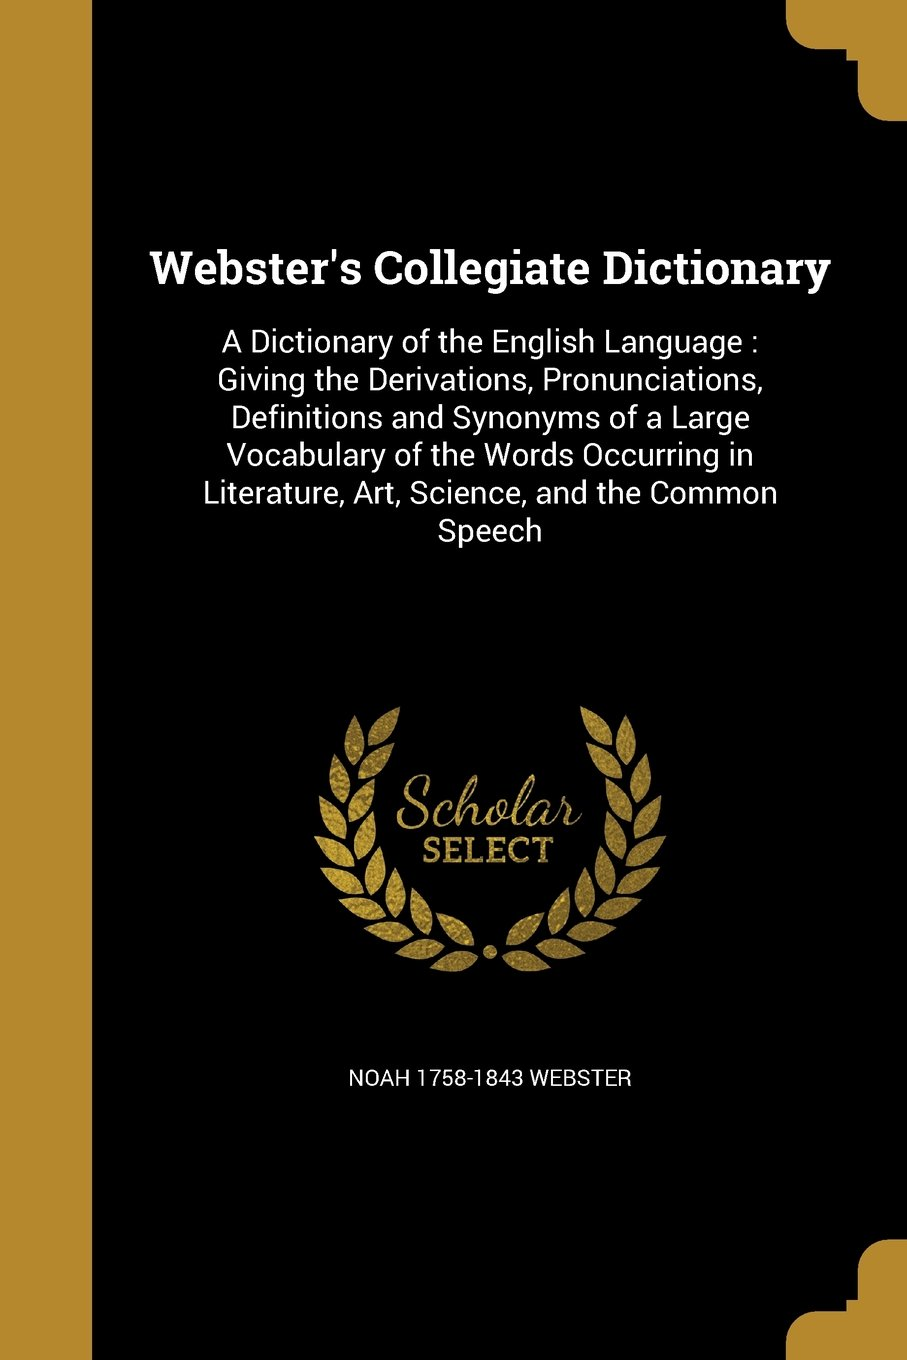 Webster's Collegiate Dictionary: A Dictionary of the English Language: Giving the Derivations, Pronunciations, Definitions and Synonyms of a Large ... Art, Science, and the Common Speech